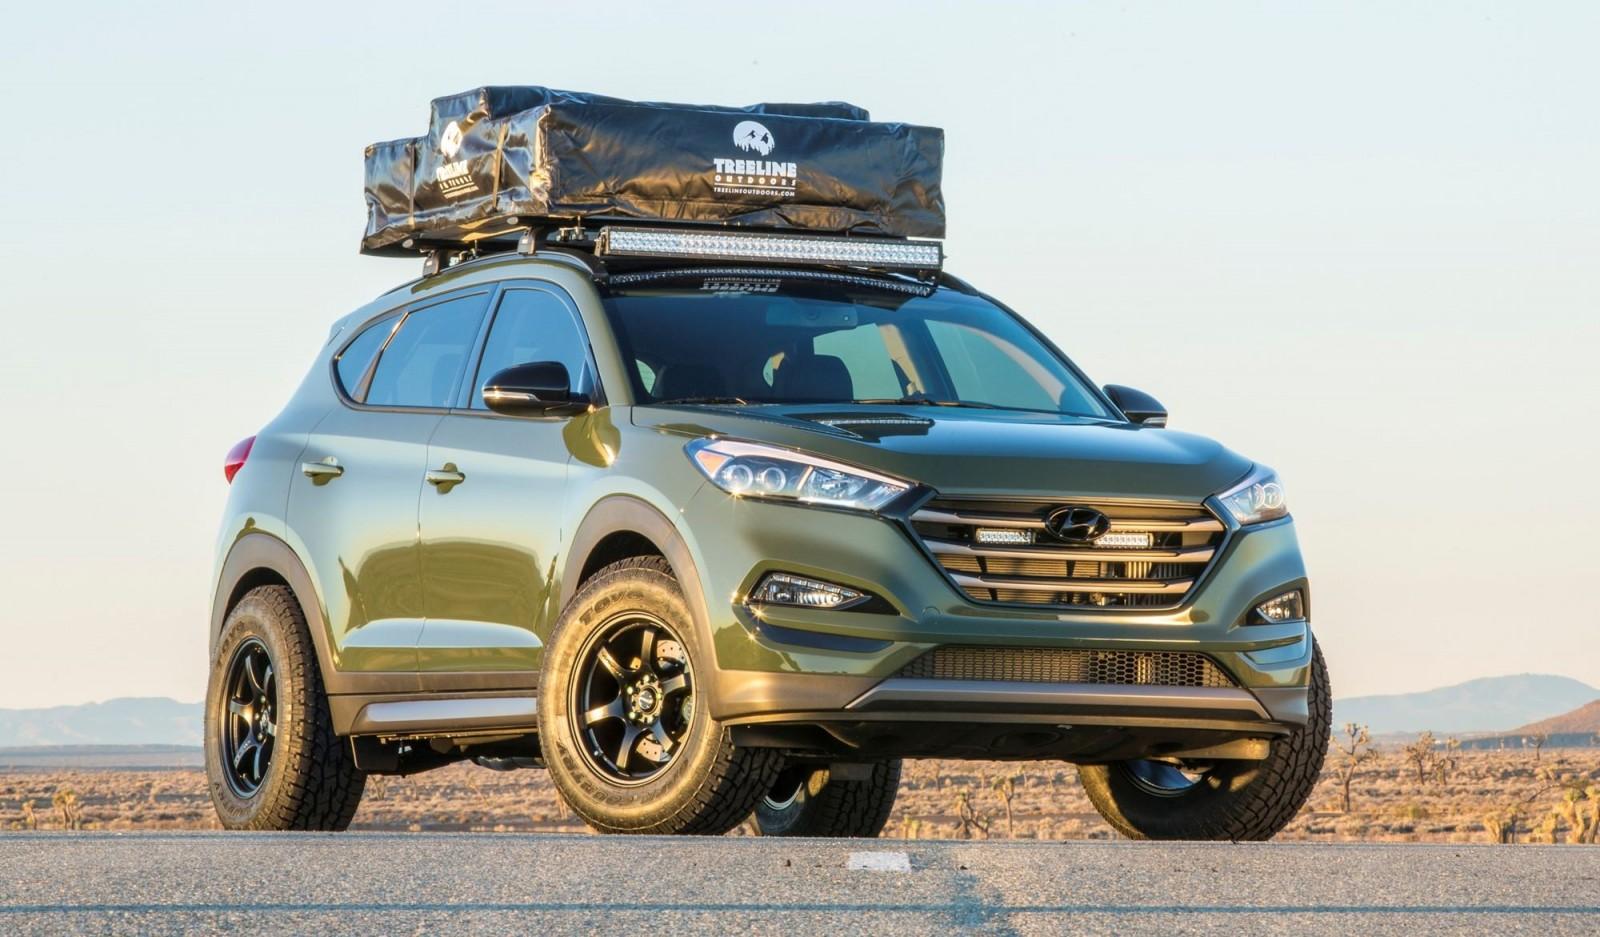 2016 hyundai tucson adventuremobile by john pangilinan. Black Bedroom Furniture Sets. Home Design Ideas